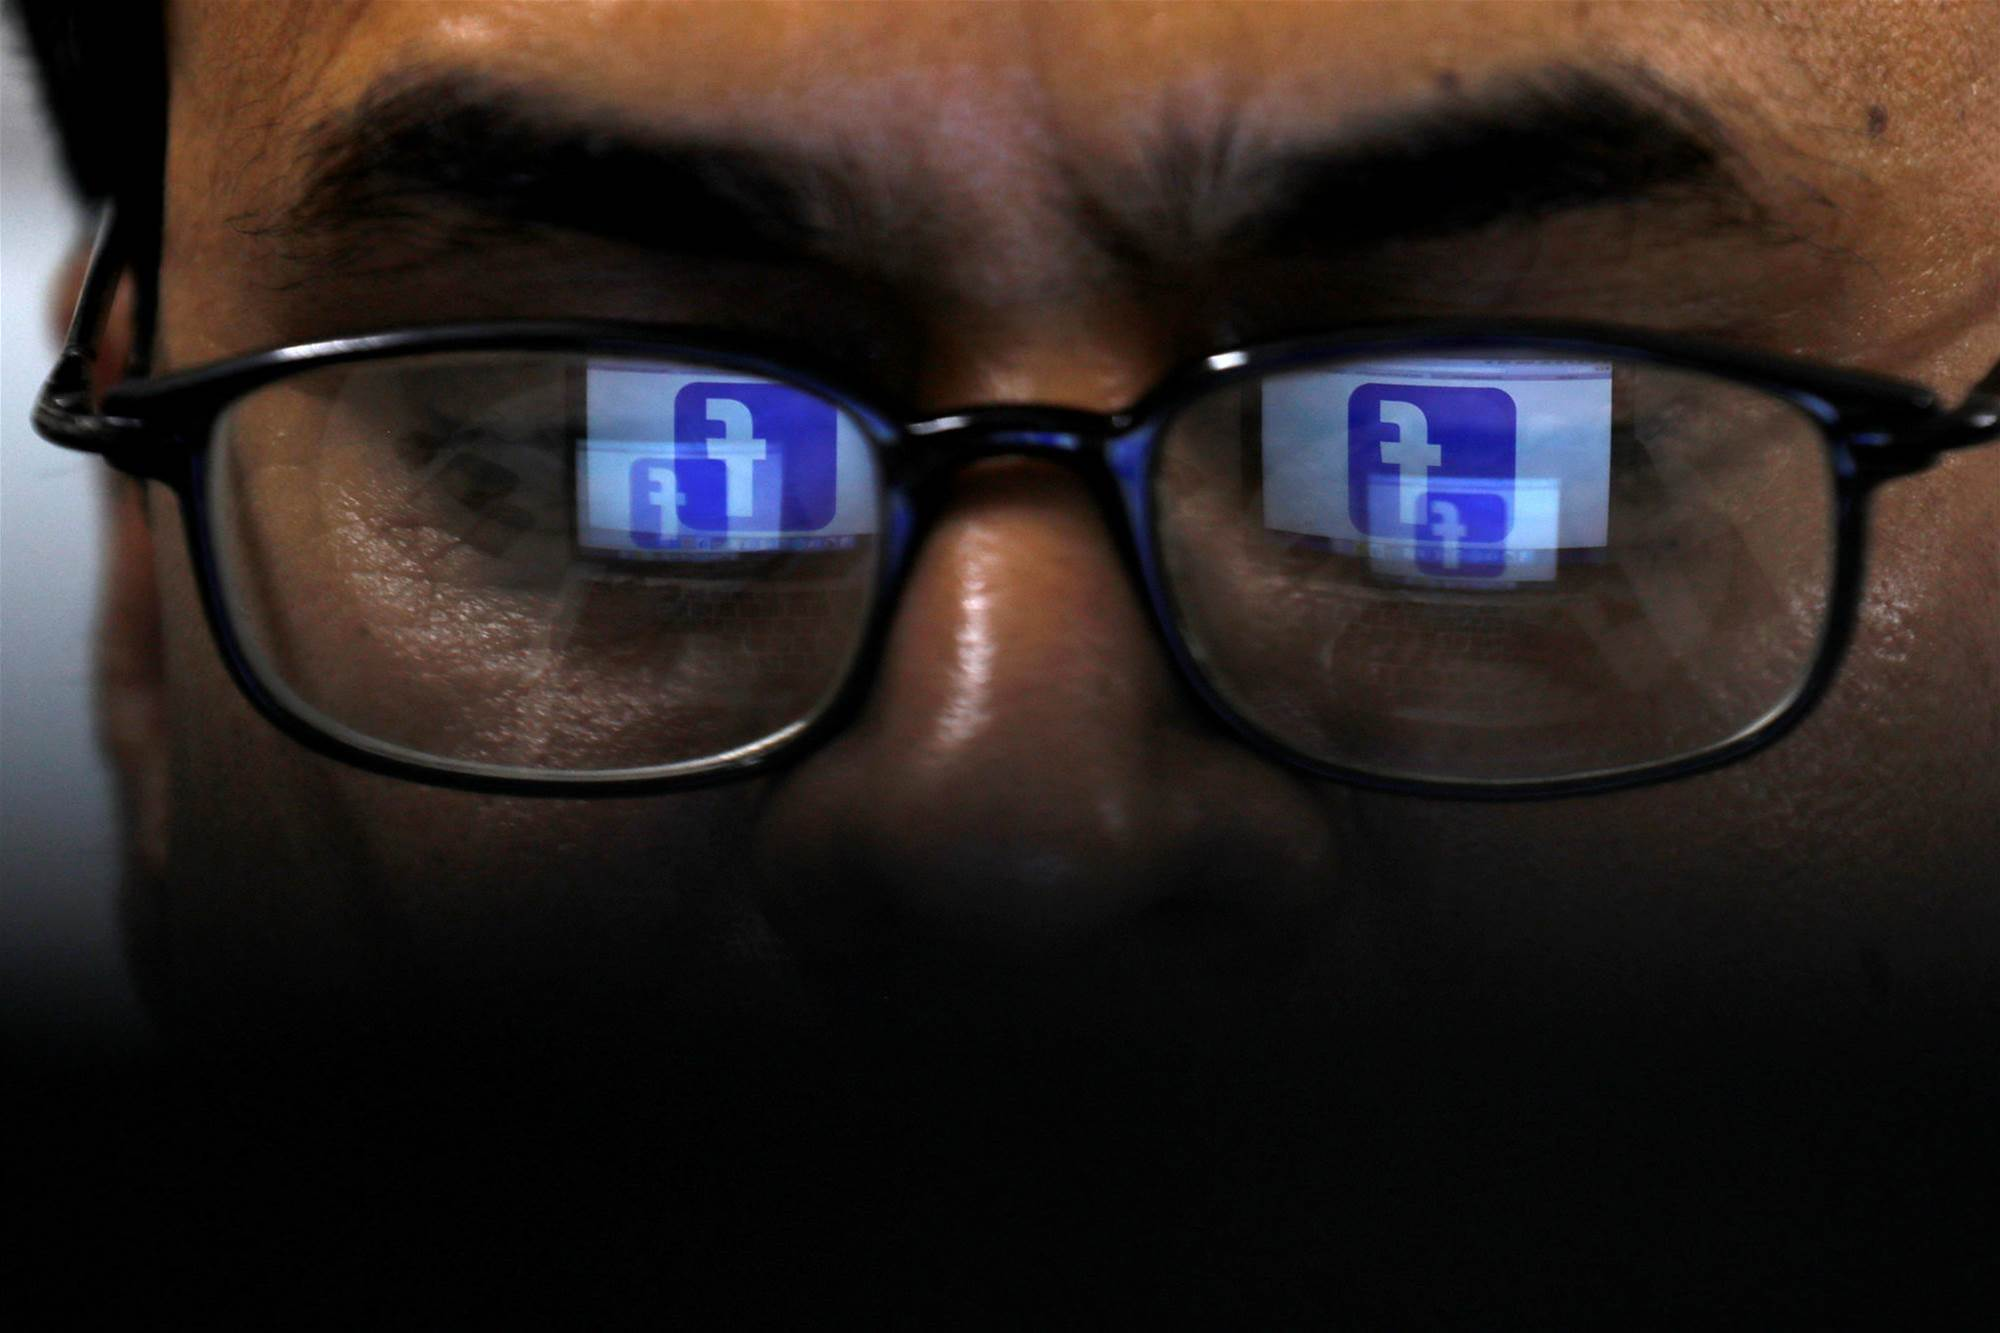 Britain plans social media watchdog to battle harmful content